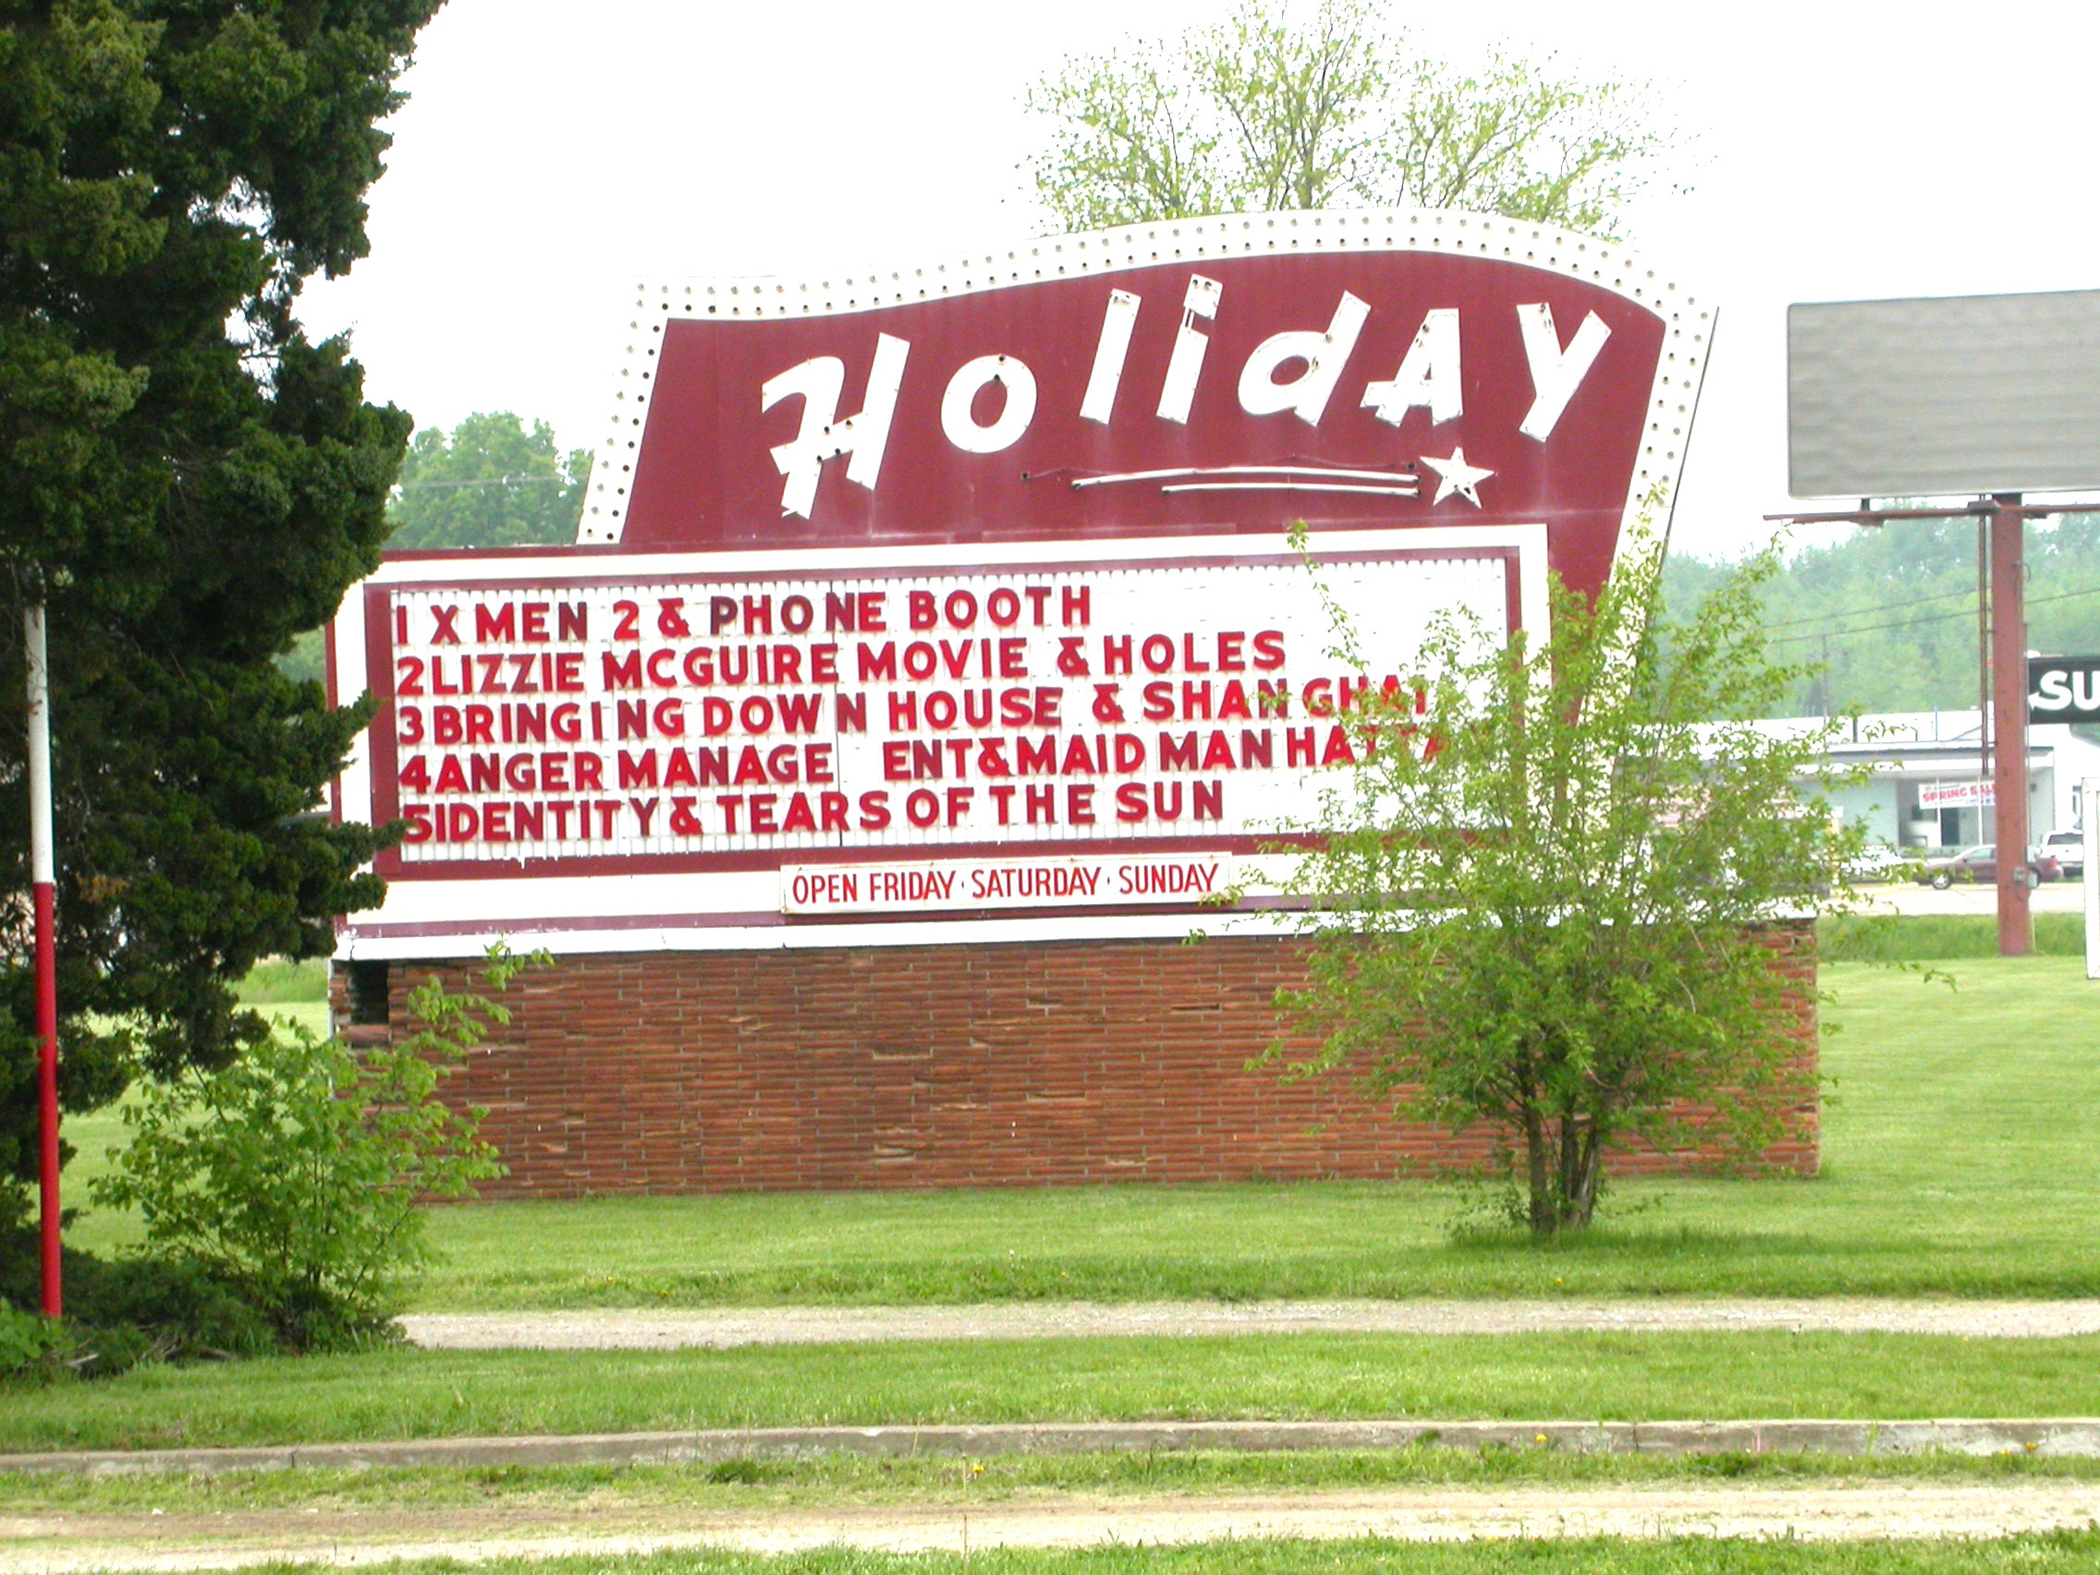 spencer county attractions santa claus indiana